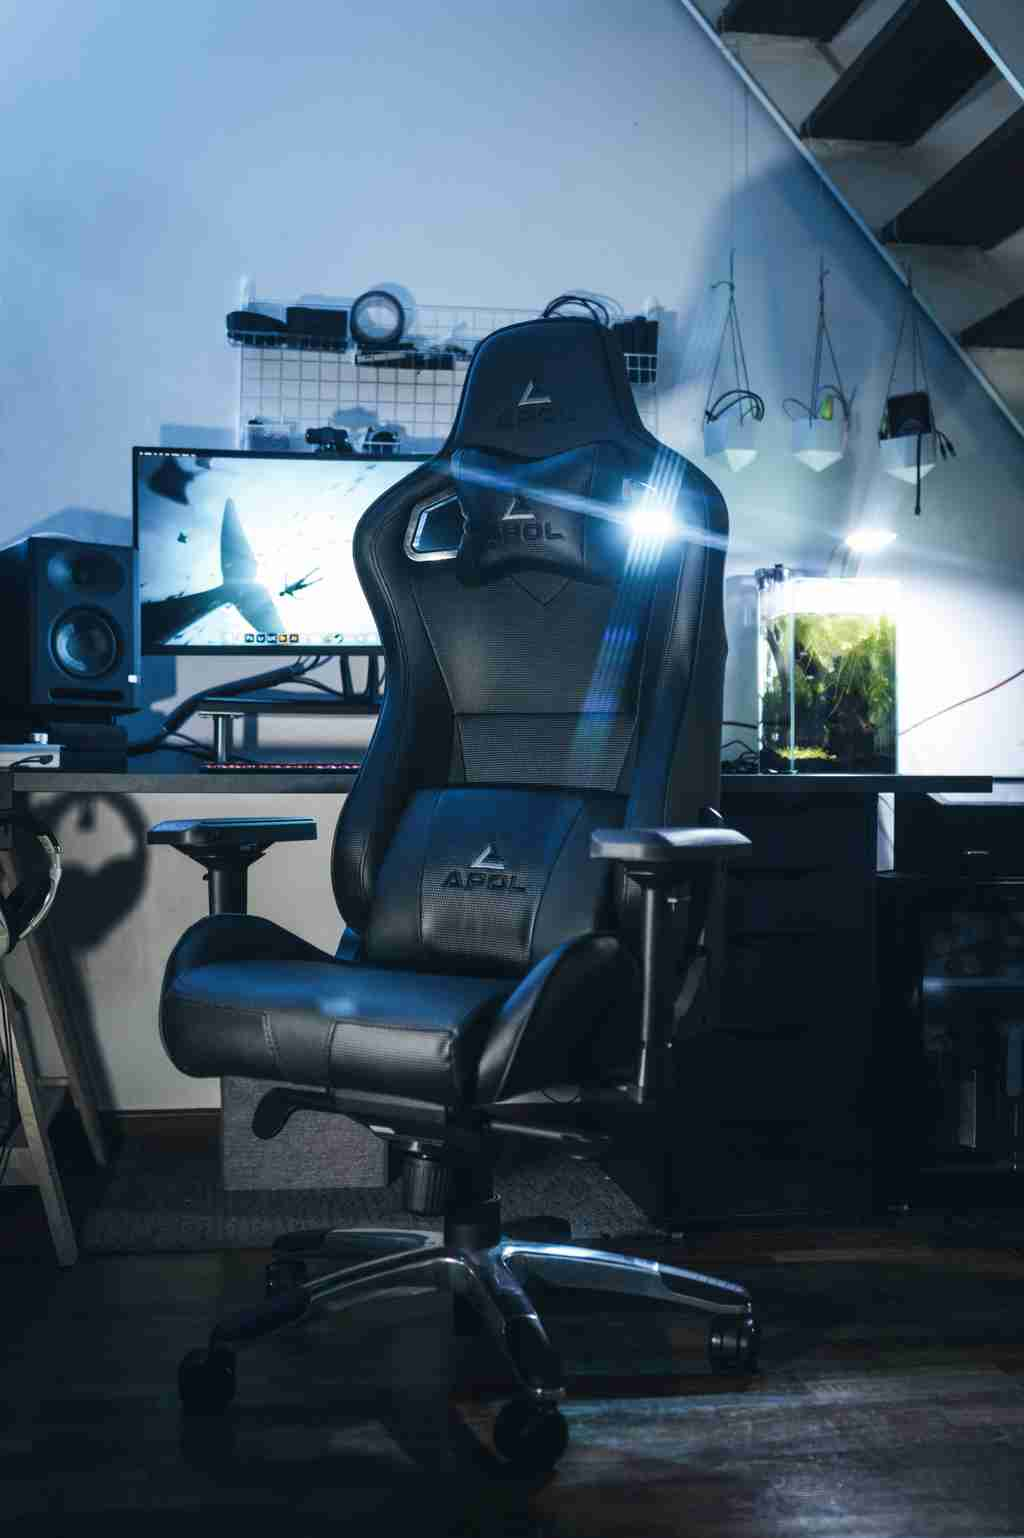 get a good ergonomic chair support picture - apol